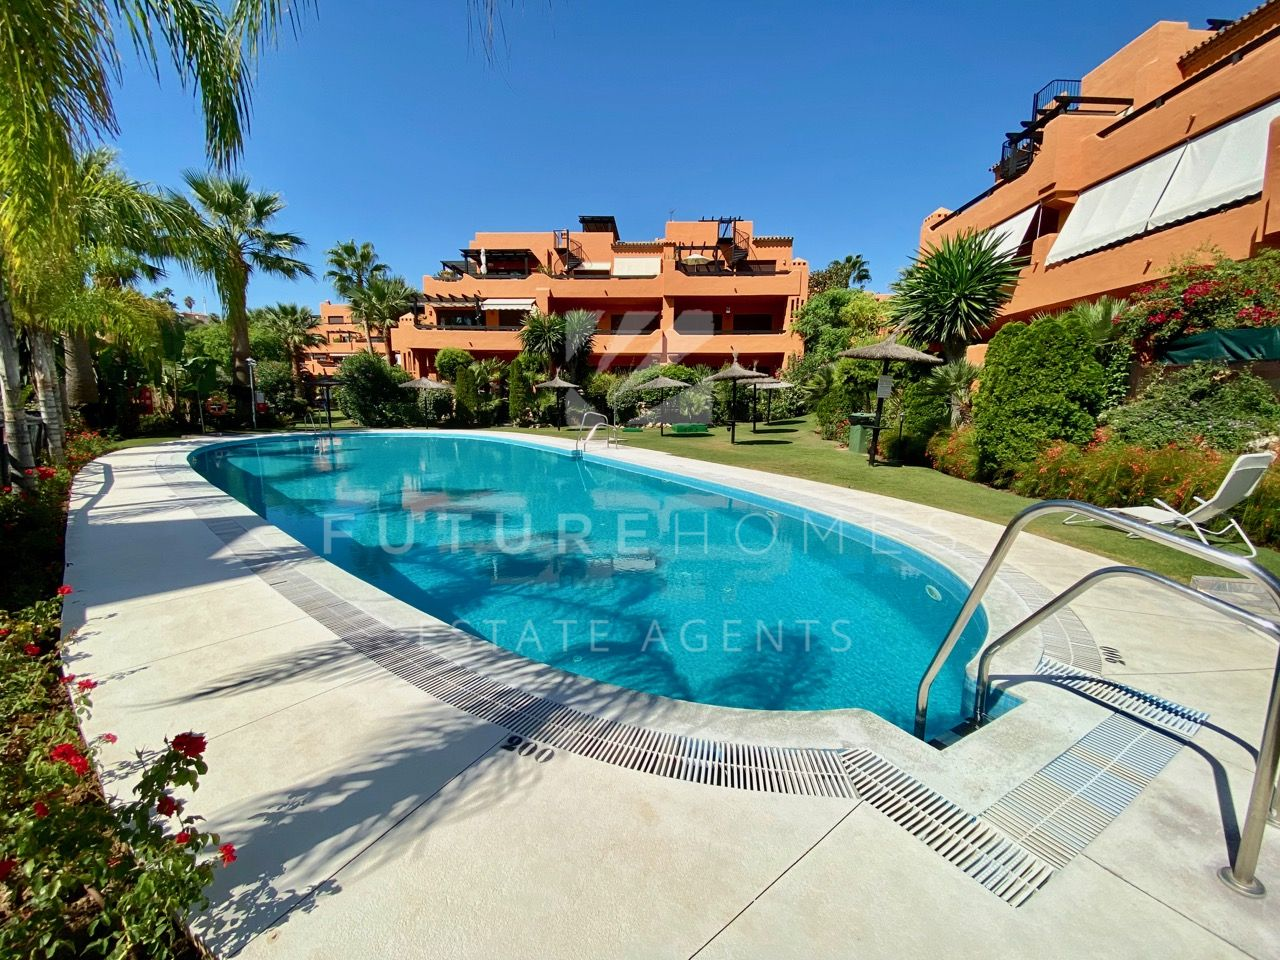 Bargain! Spacious ground floor apartment only 10 min walk to the beach in Jardines de Nueva Galera!